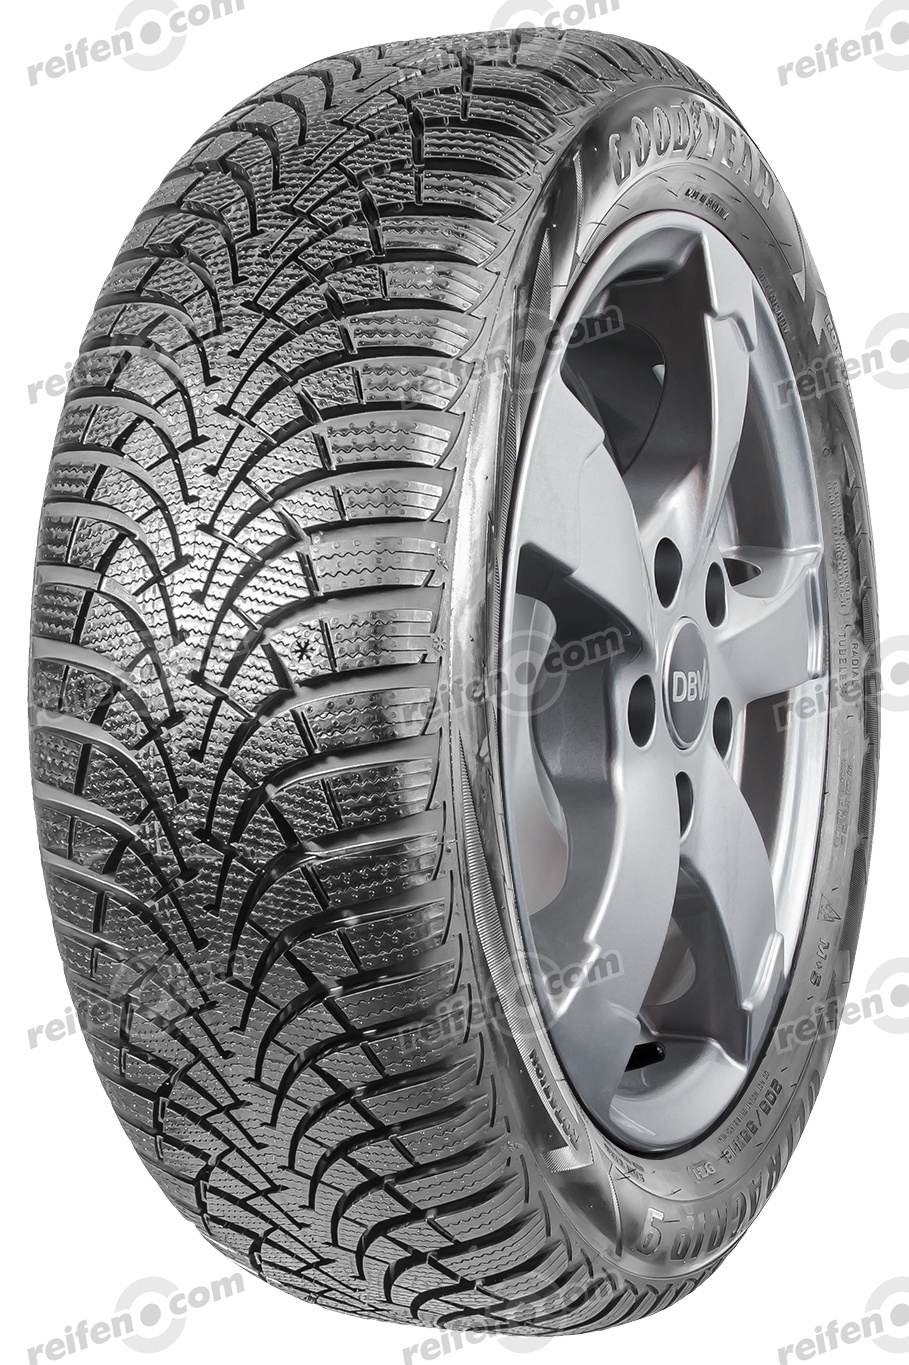 195/65 R15 91T Ultra Grip 9 MS  Ultra Grip 9 MS